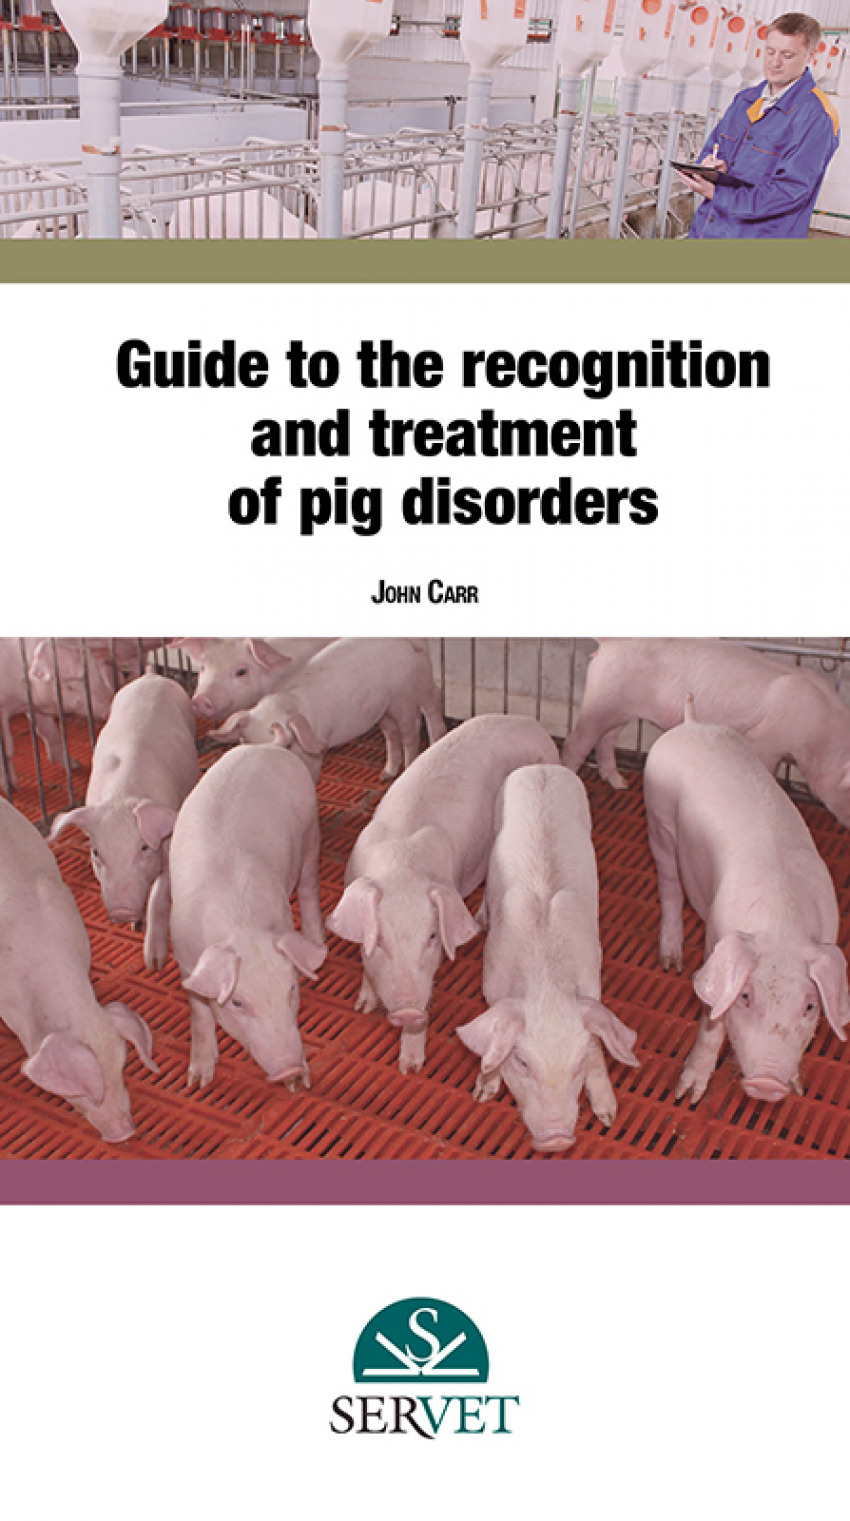 Guide to the recognition and treatment of pig disorders